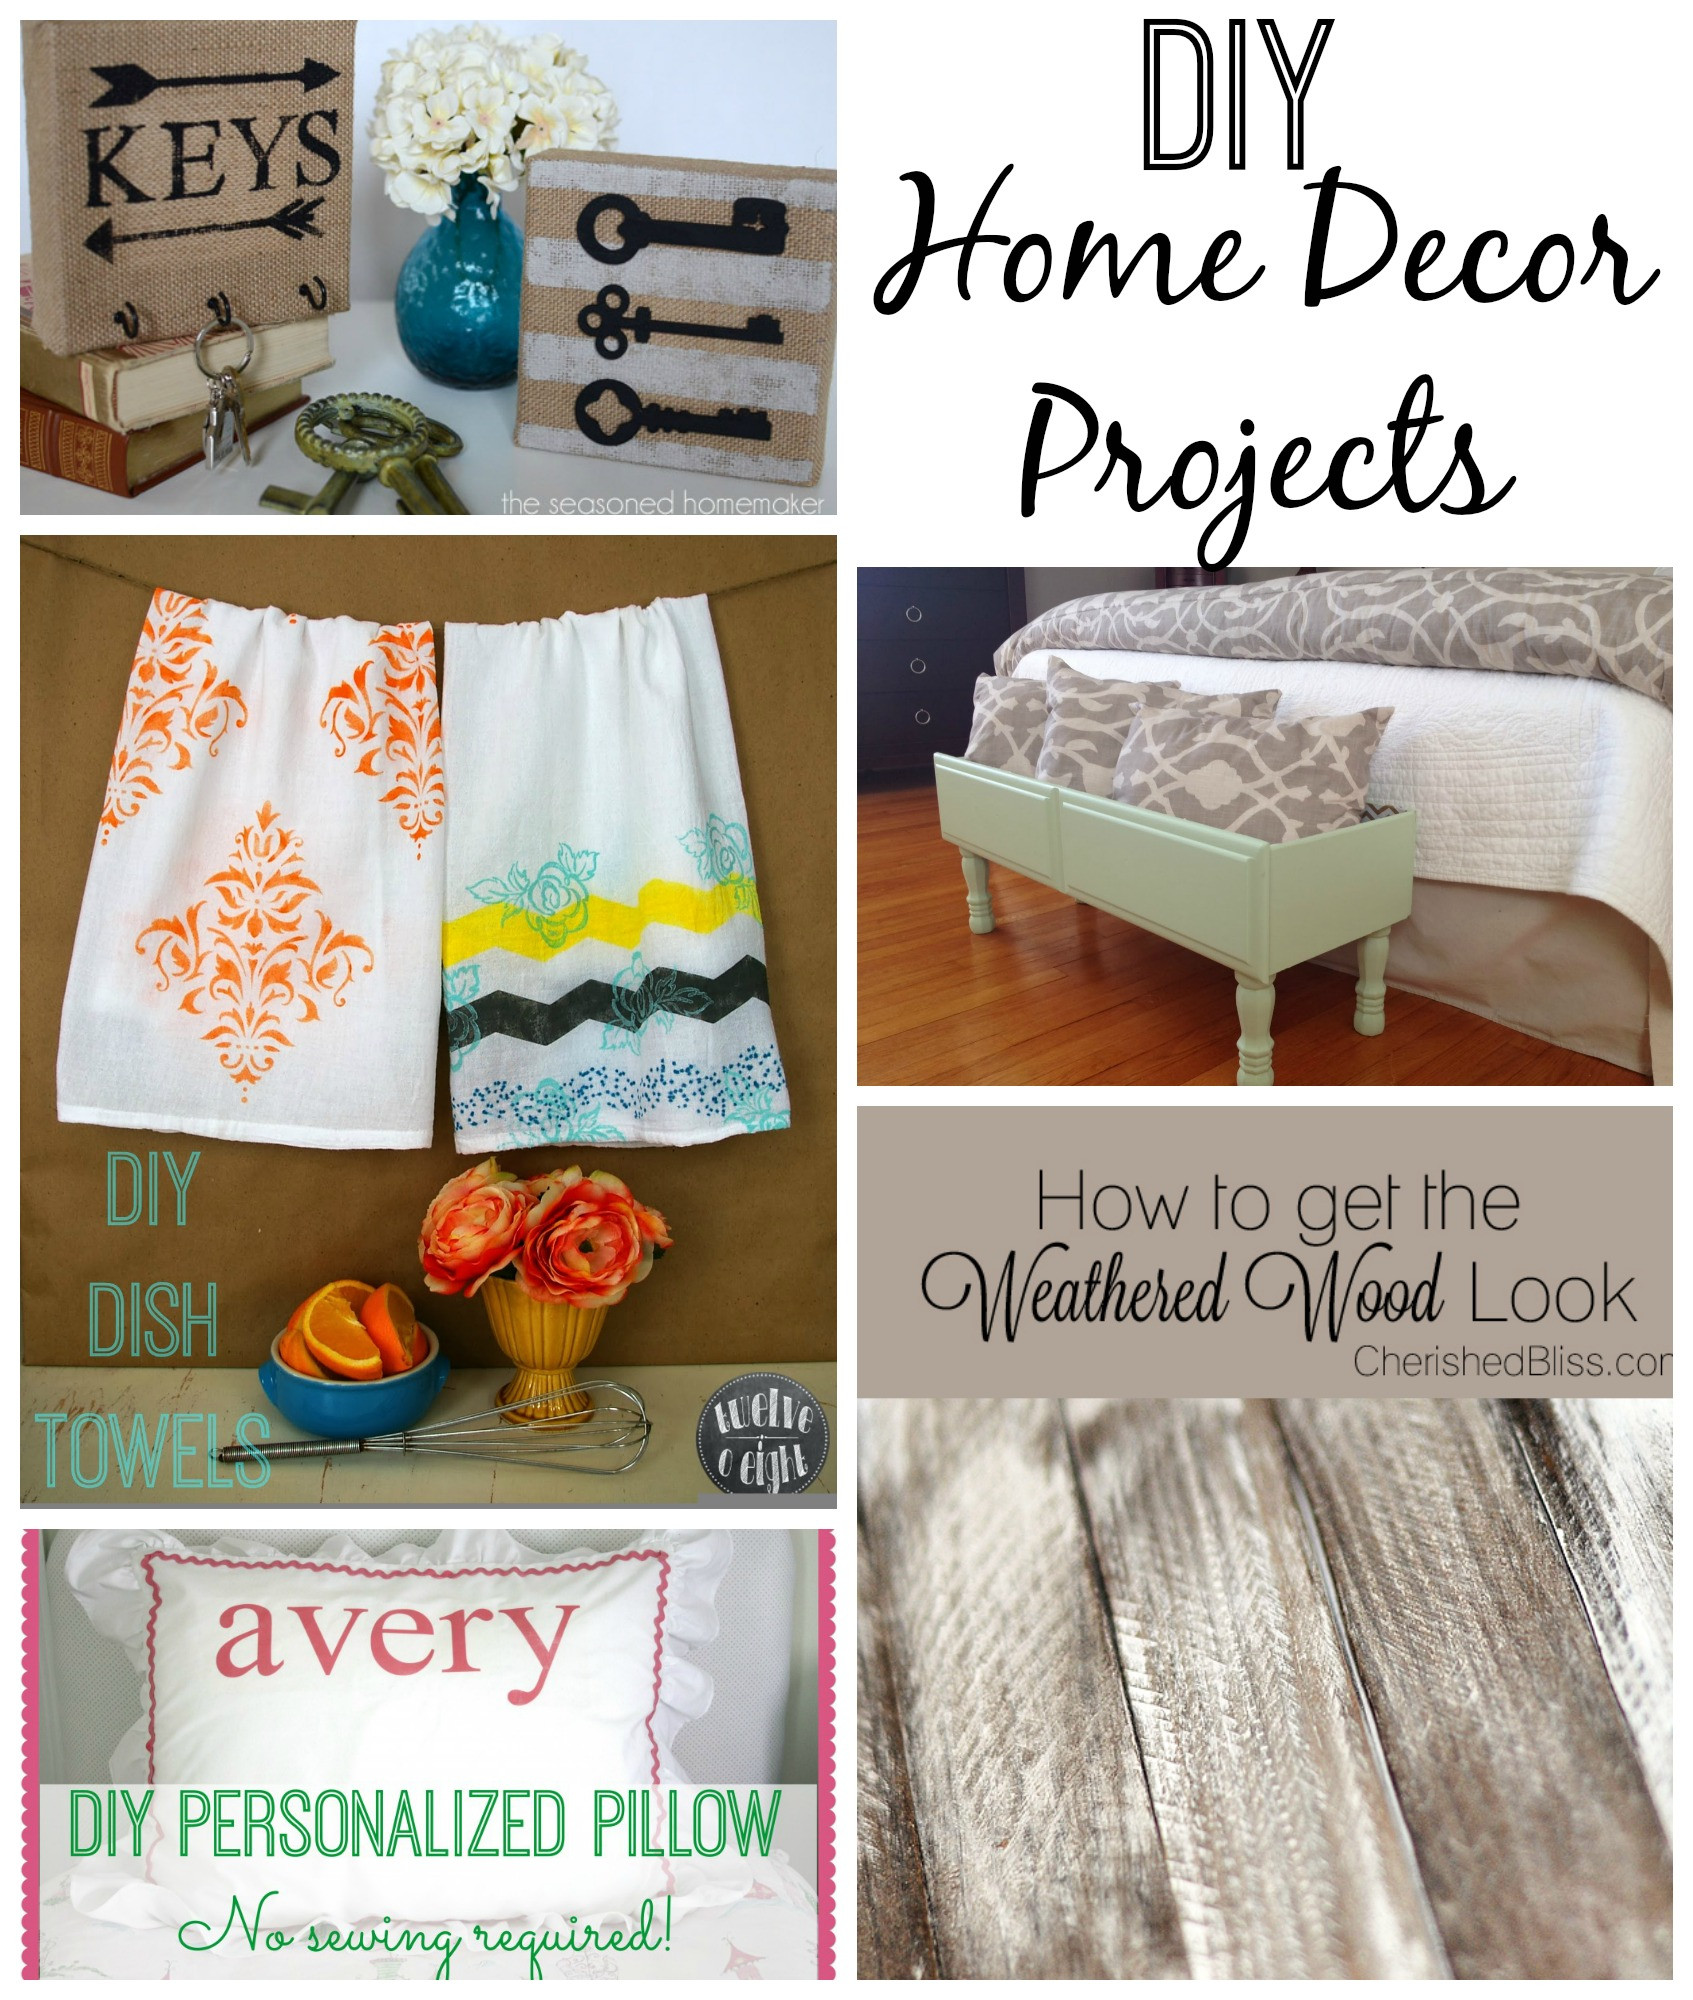 Best ideas about DIY Home Decor Crafts . Save or Pin DIY Home Decor Projects Now.